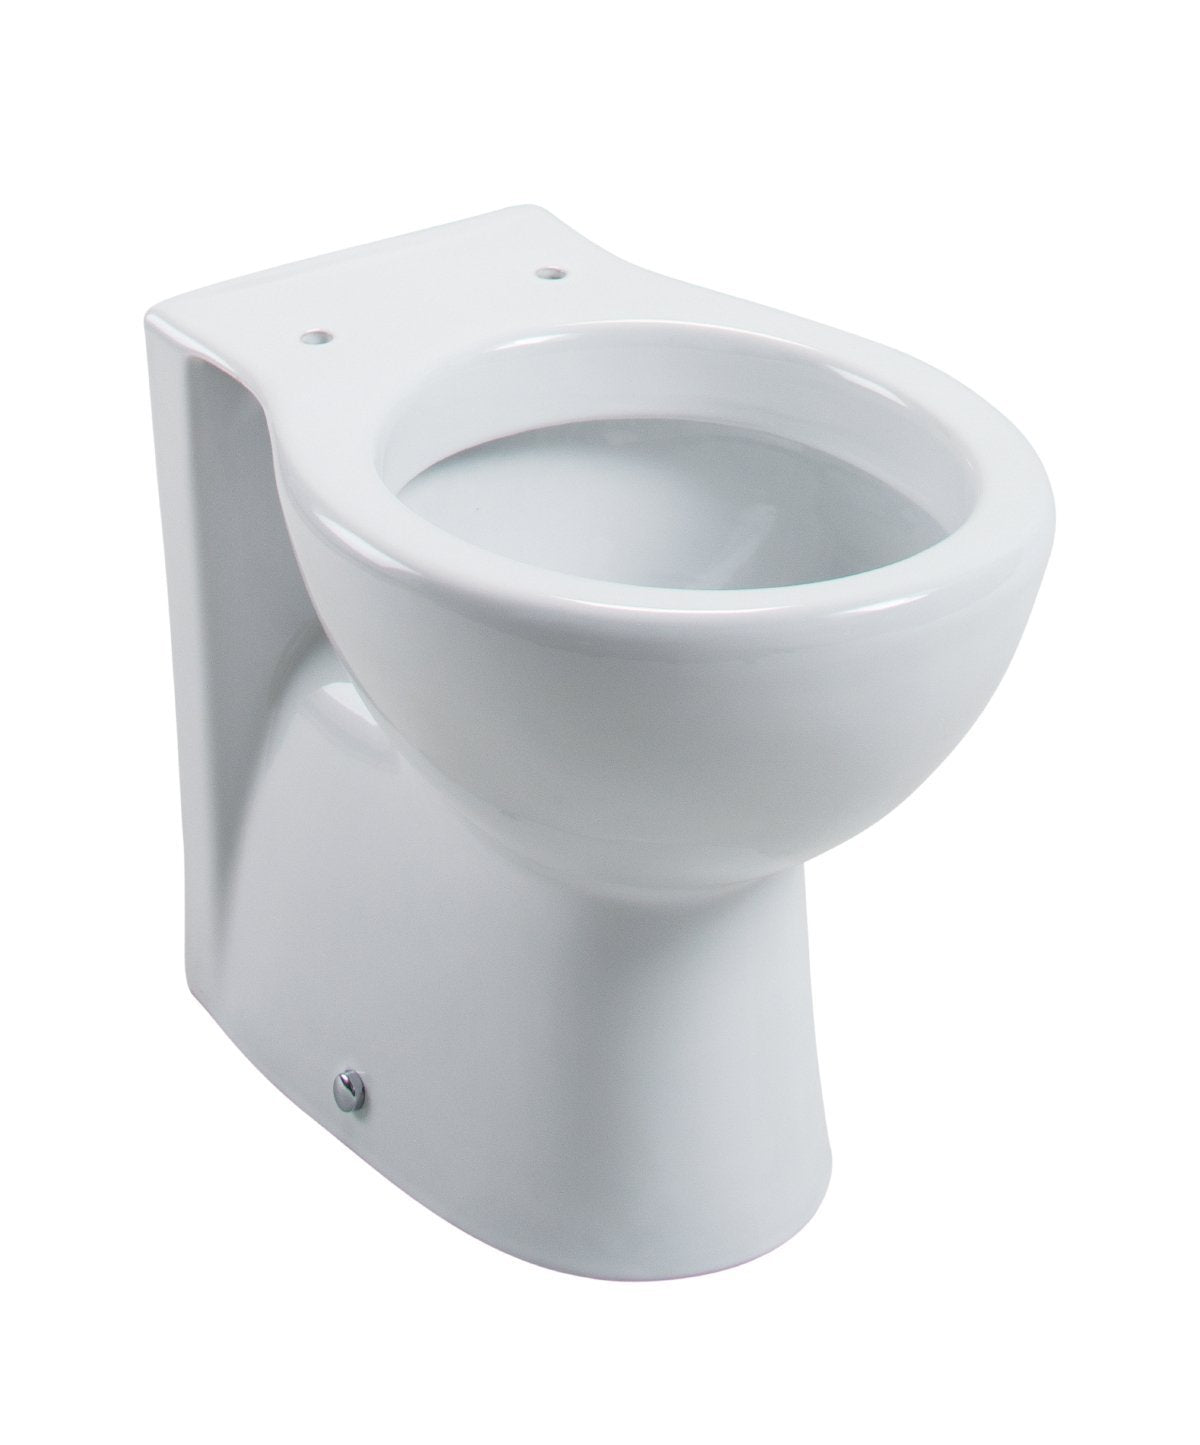 Cassellie Churwell Back to Wall Toilet - Excluding Seat